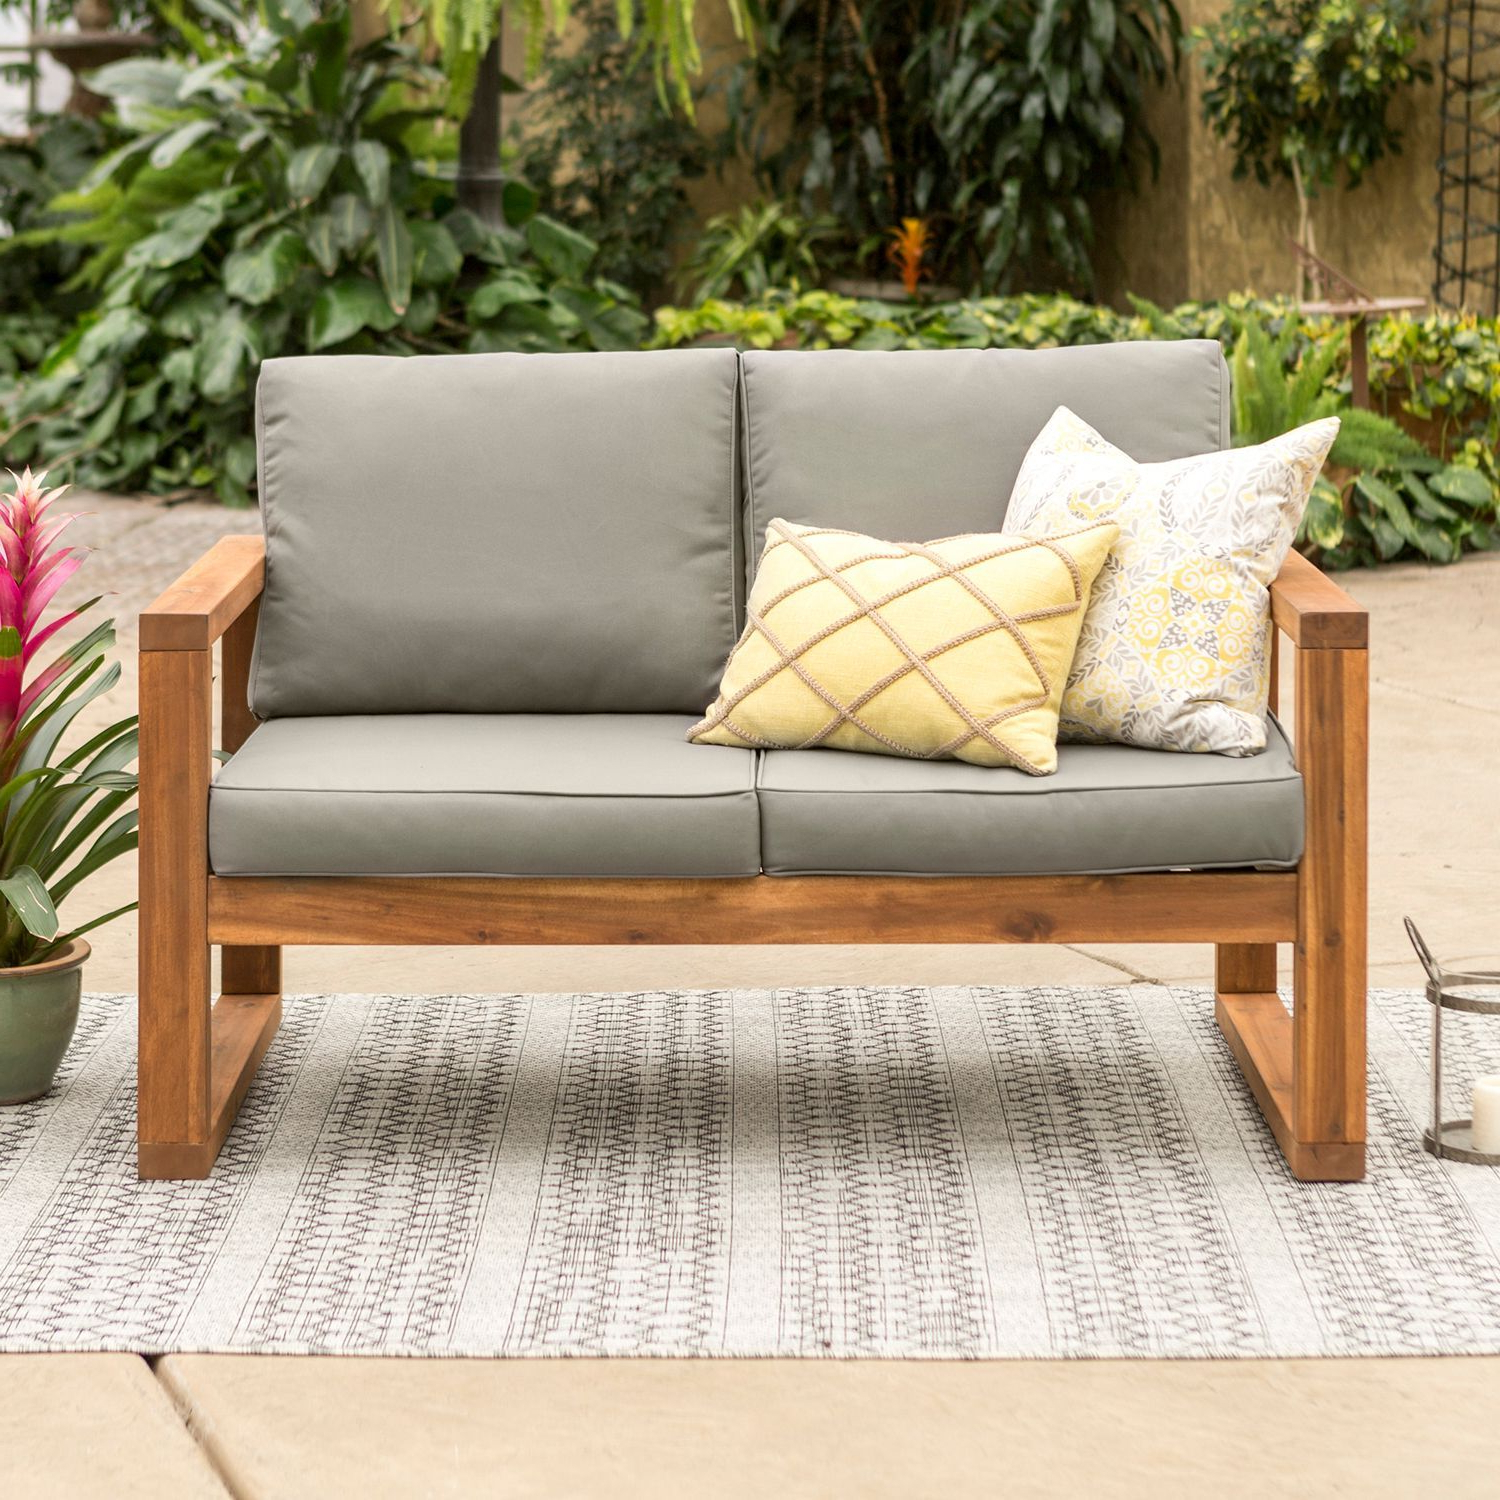 2019 Hudson Acacia Outdoor Patio Love Seat With Gray Cushions Regarding Lyall Loveseats With Cushion (View 8 of 20)